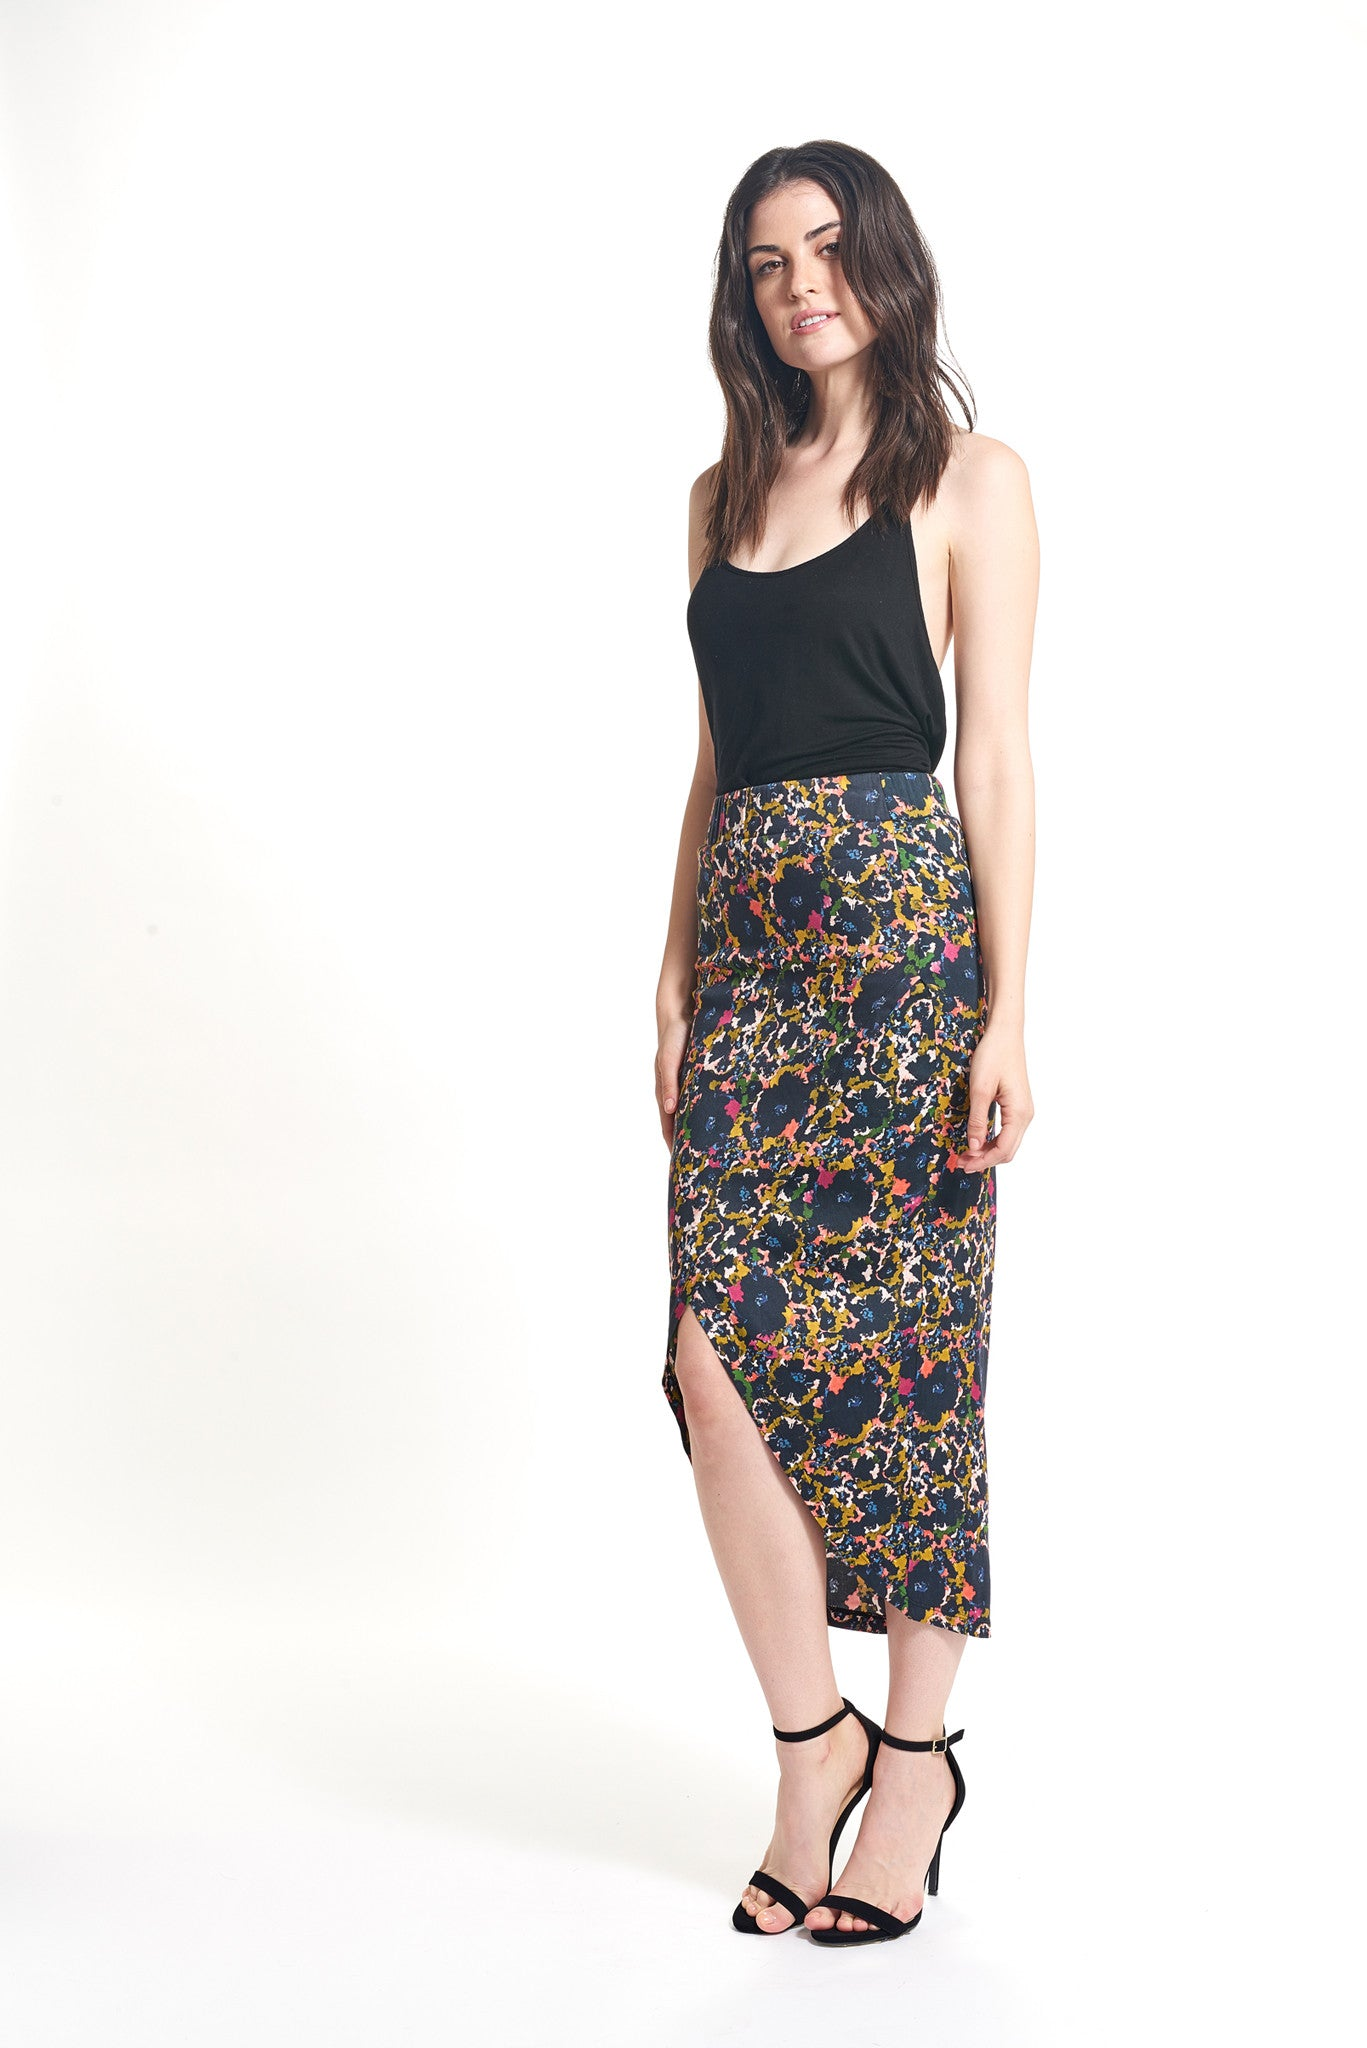 SOFIA 3/4 WRAP SKIRT - RETRO FLORAL - Thieves Like Us Collection